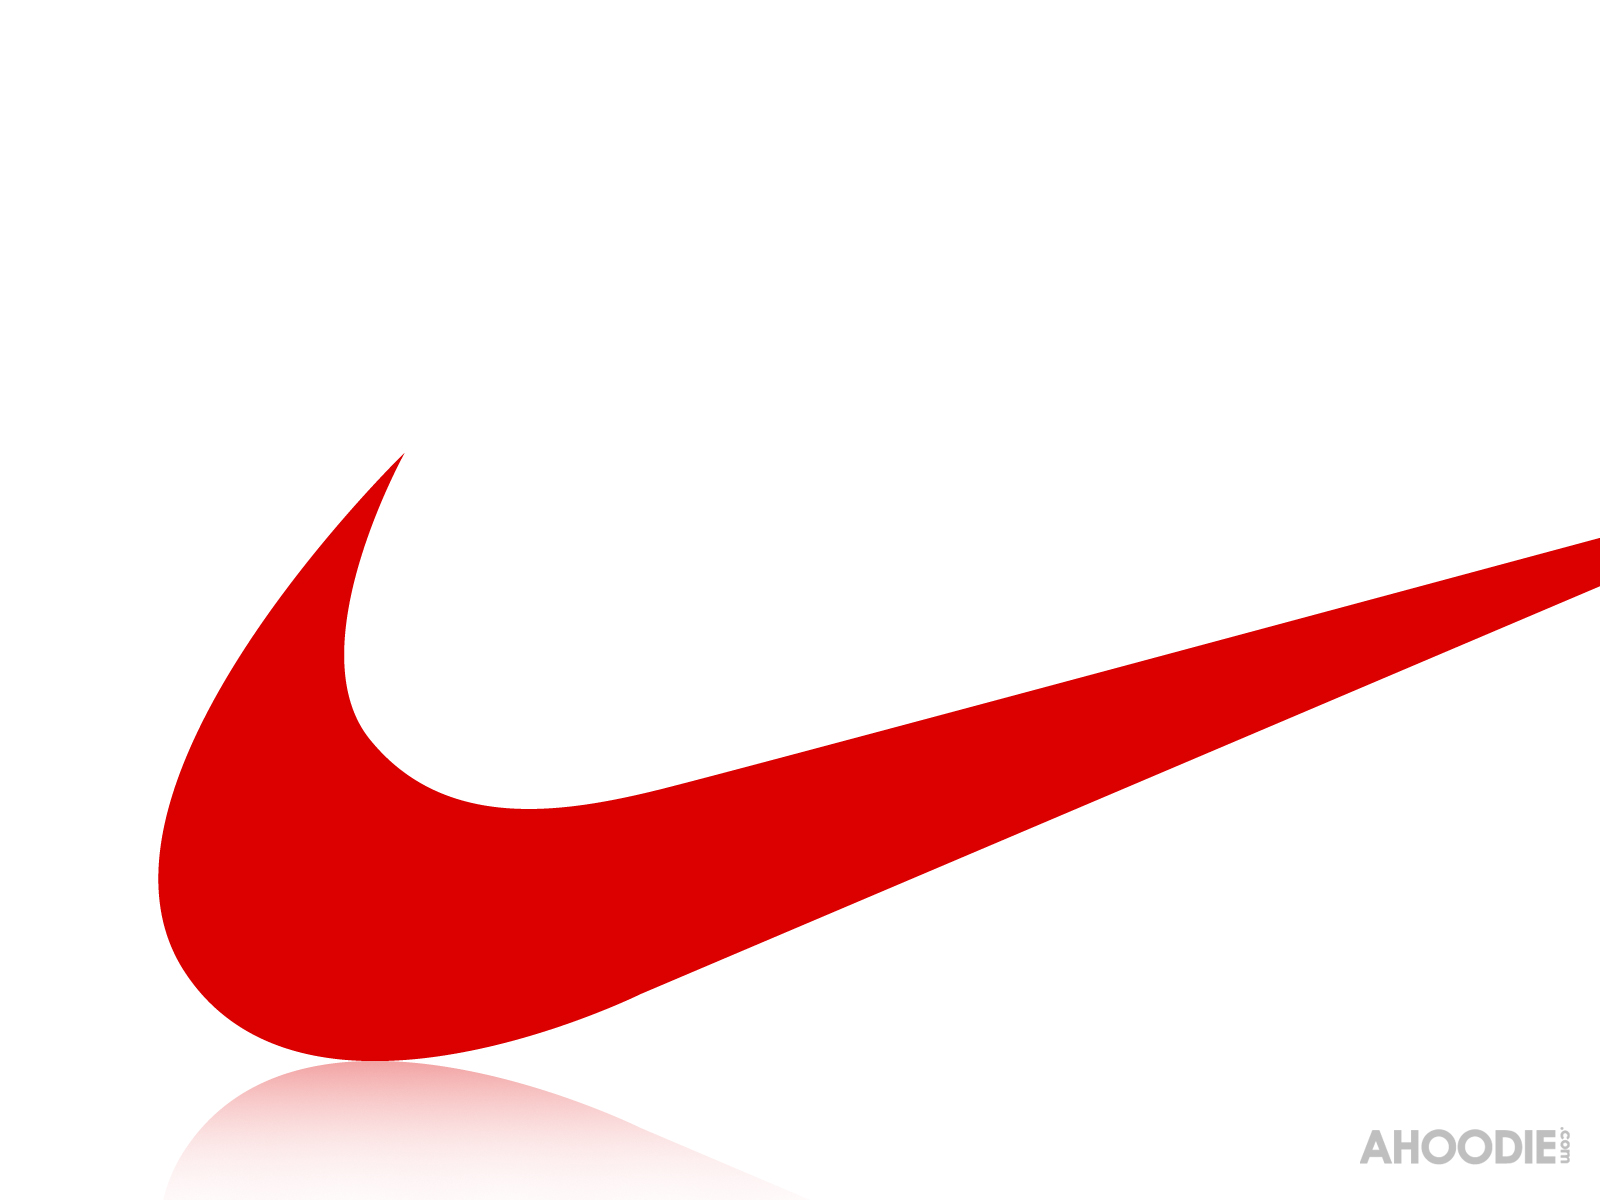 Nike Swoosh Wallpapers: The Sports-o-Nista: April 2012